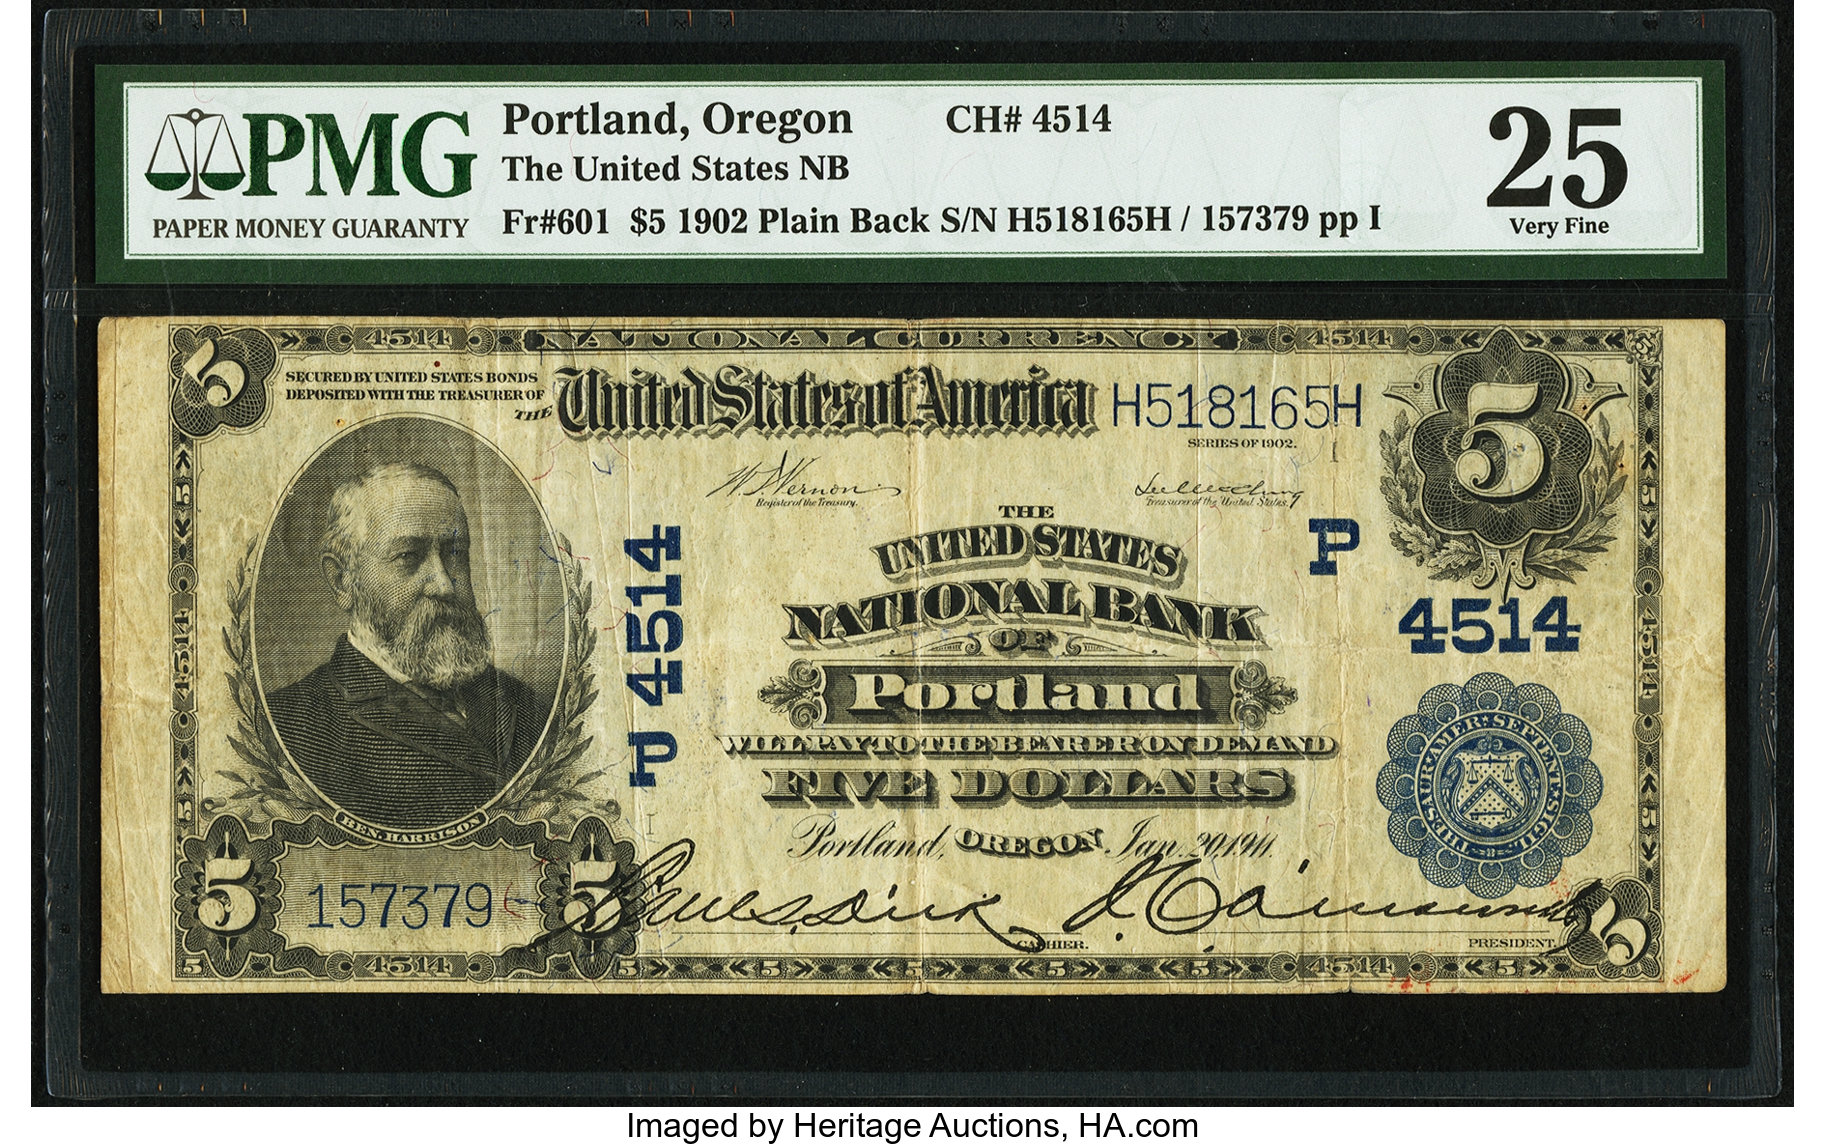 sample image for 1902 3rd Charter Period $5  Plain Back 3rd Issue (Fr.# 601)